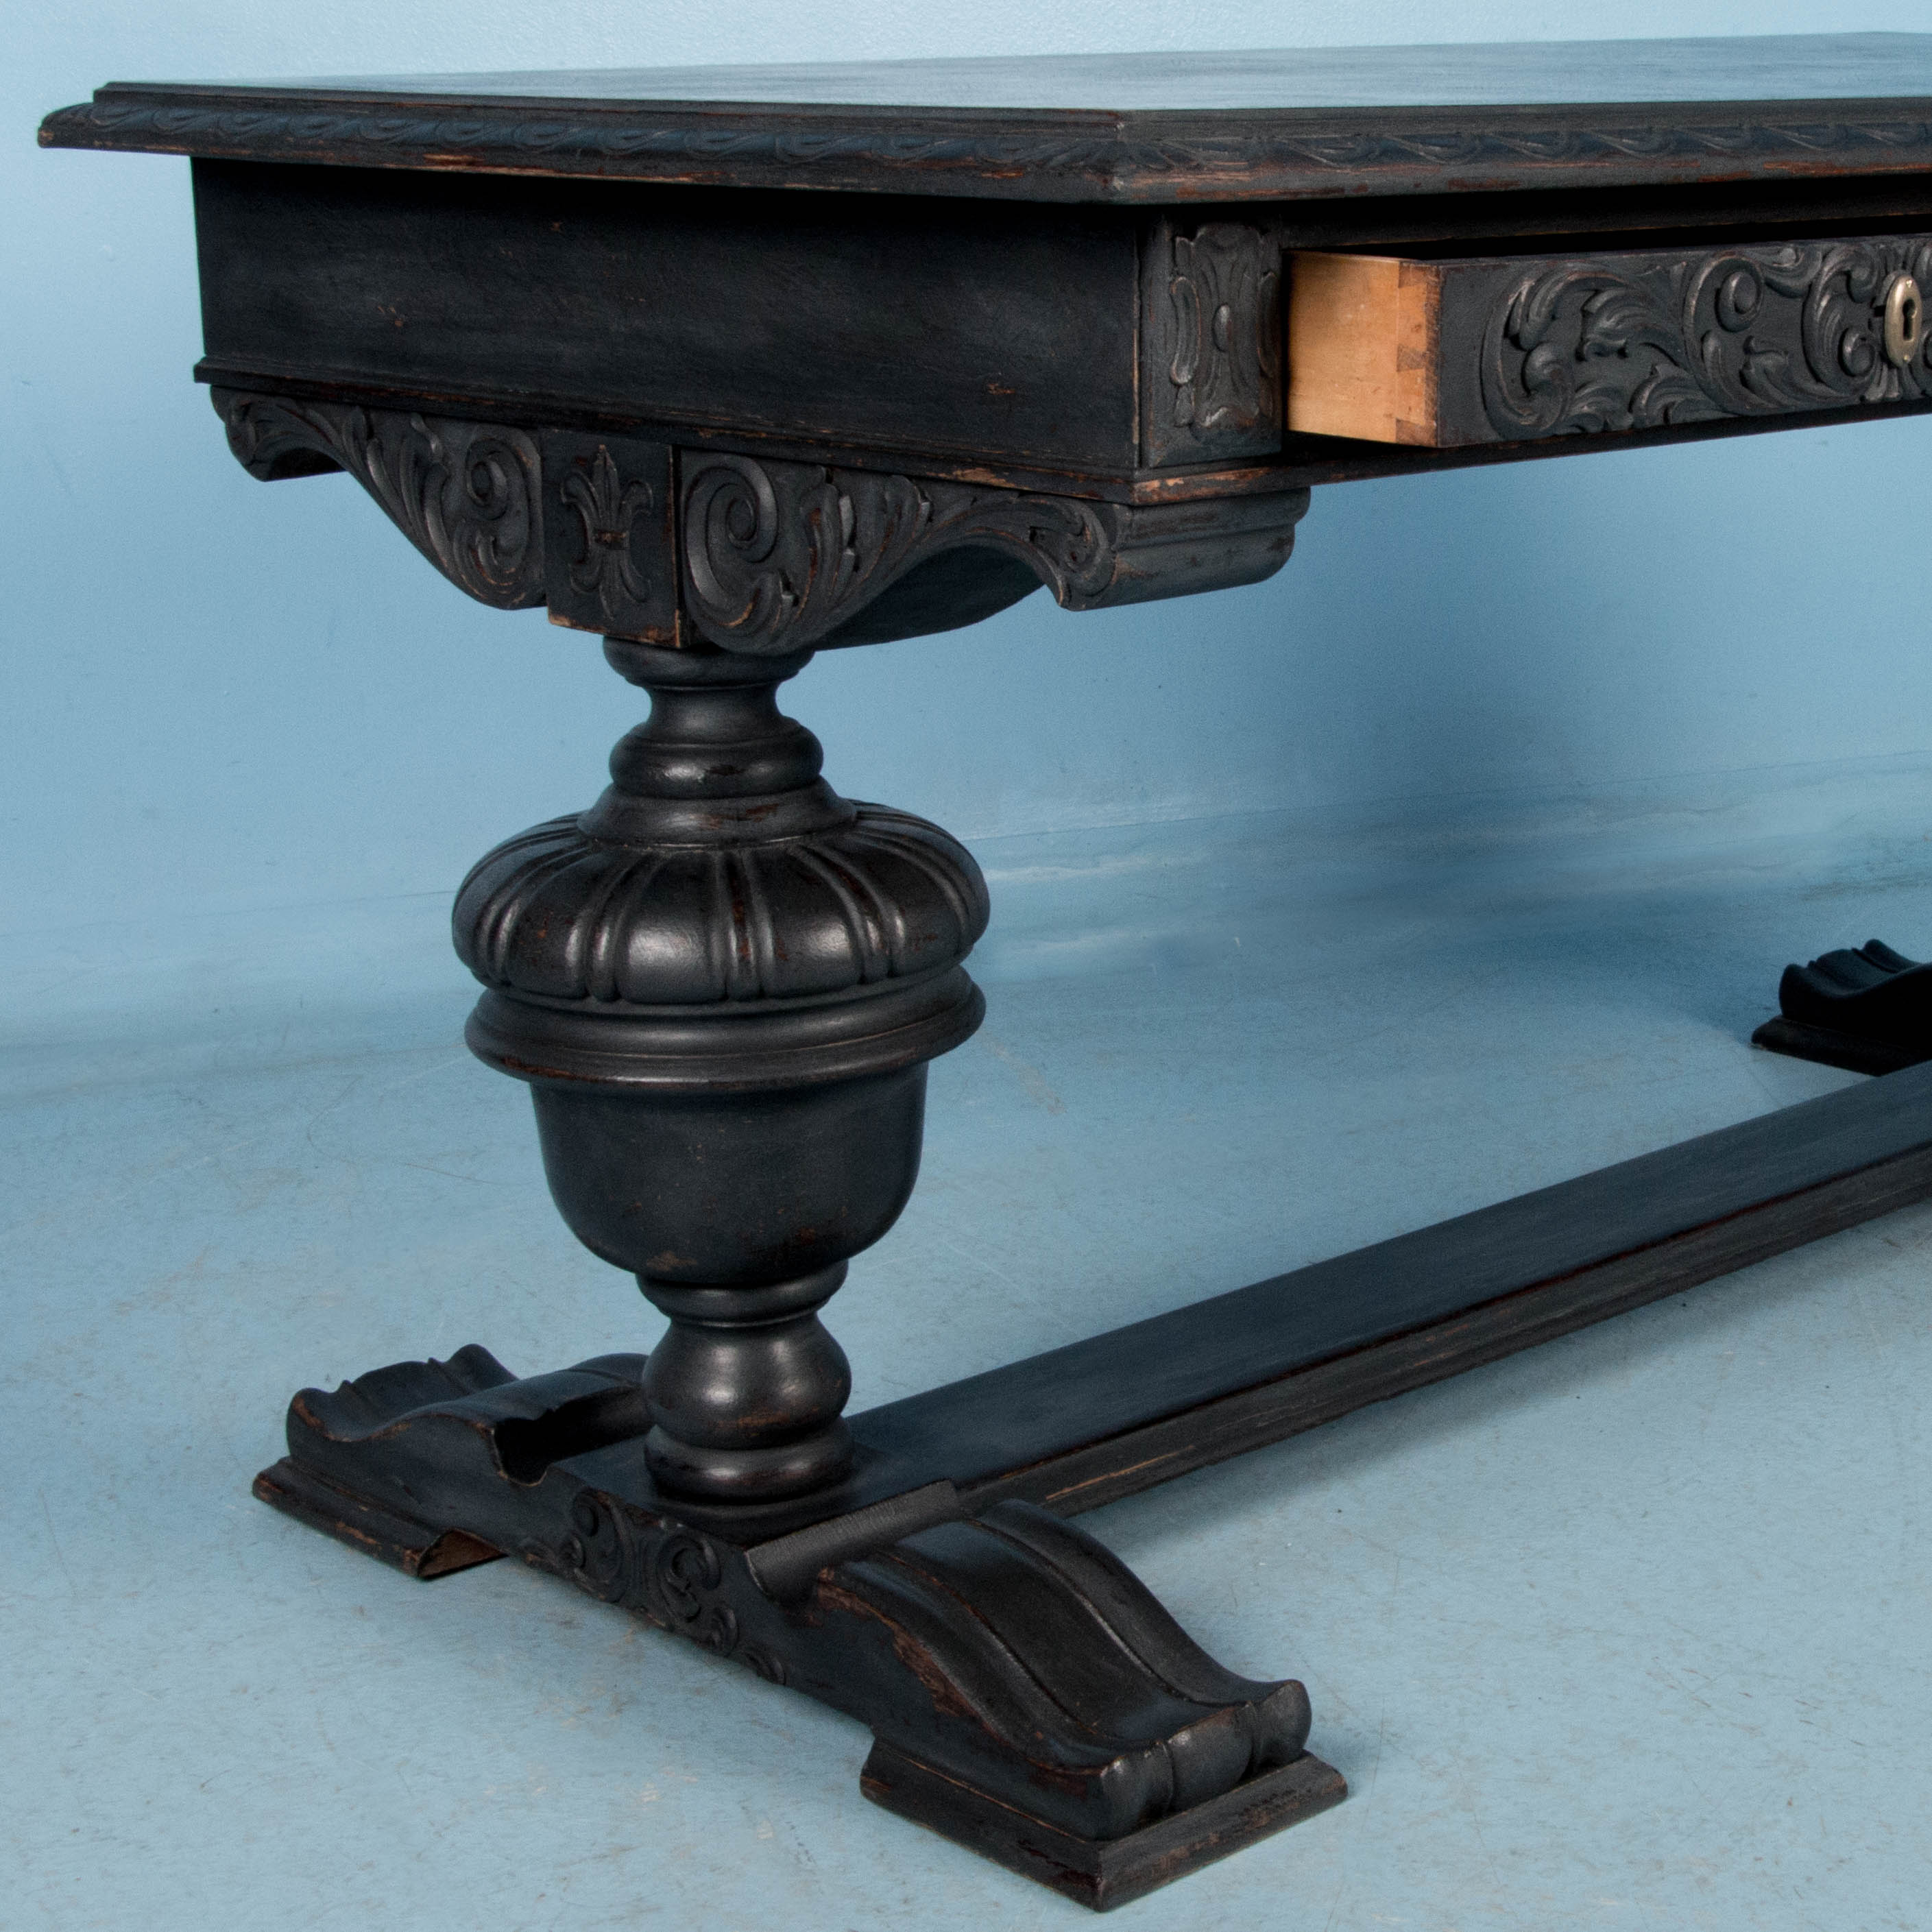 Antique Hand Carved Library Table Desk From Denmark Painted Black | eBay